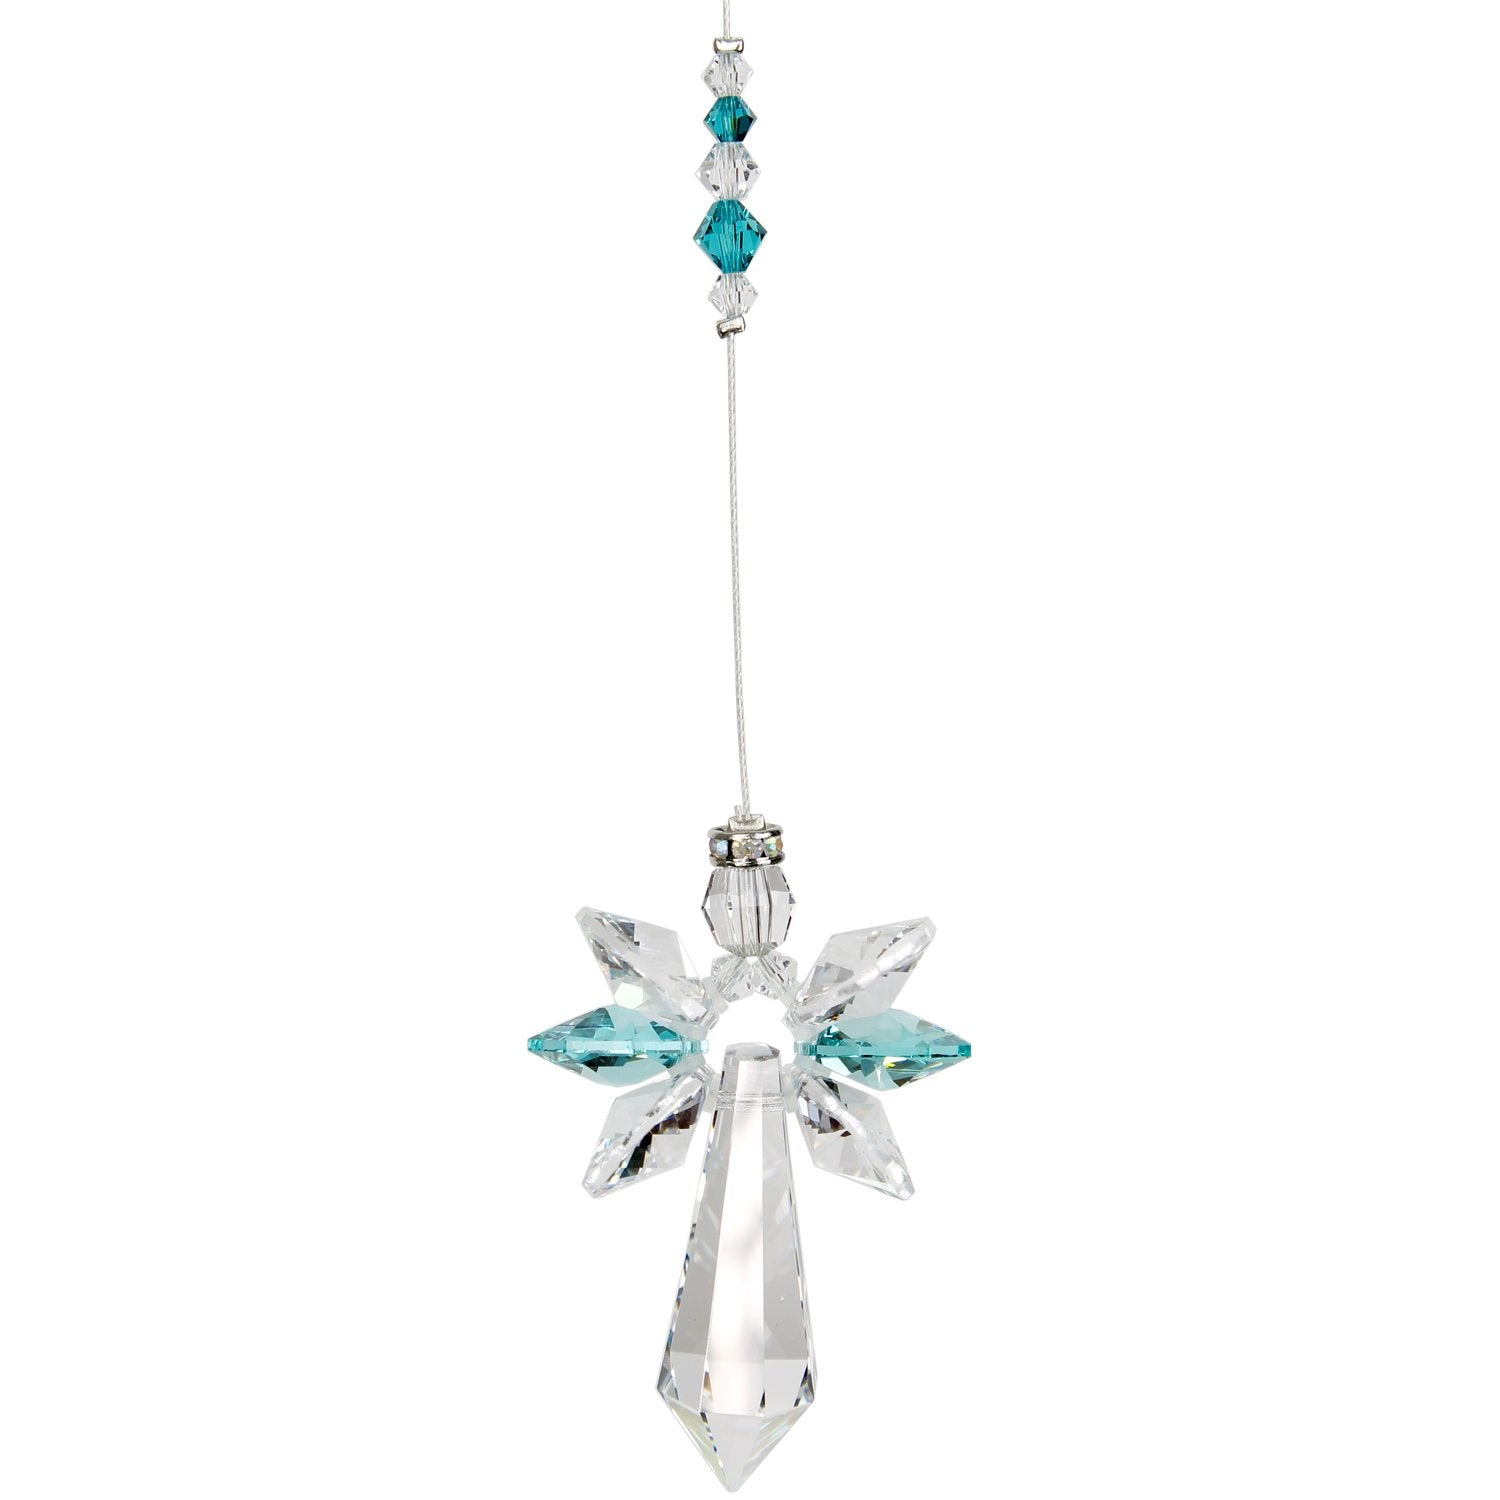 Crystal Guardian Angel Suncatcher - Large, Blue Zircon alternate product image